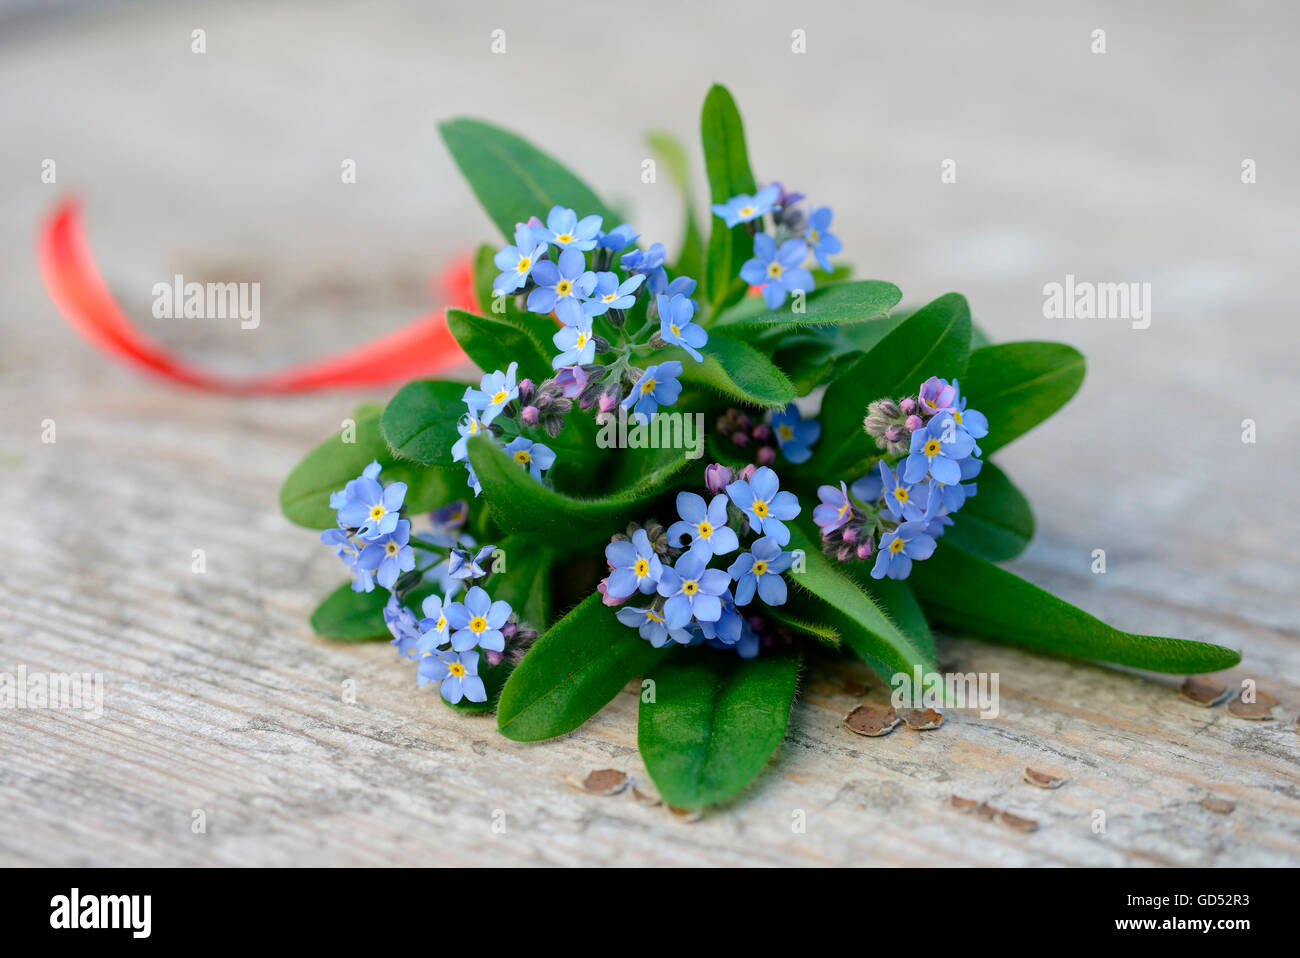 Forgetmenot / (Myosotis spec.) Stock Photo